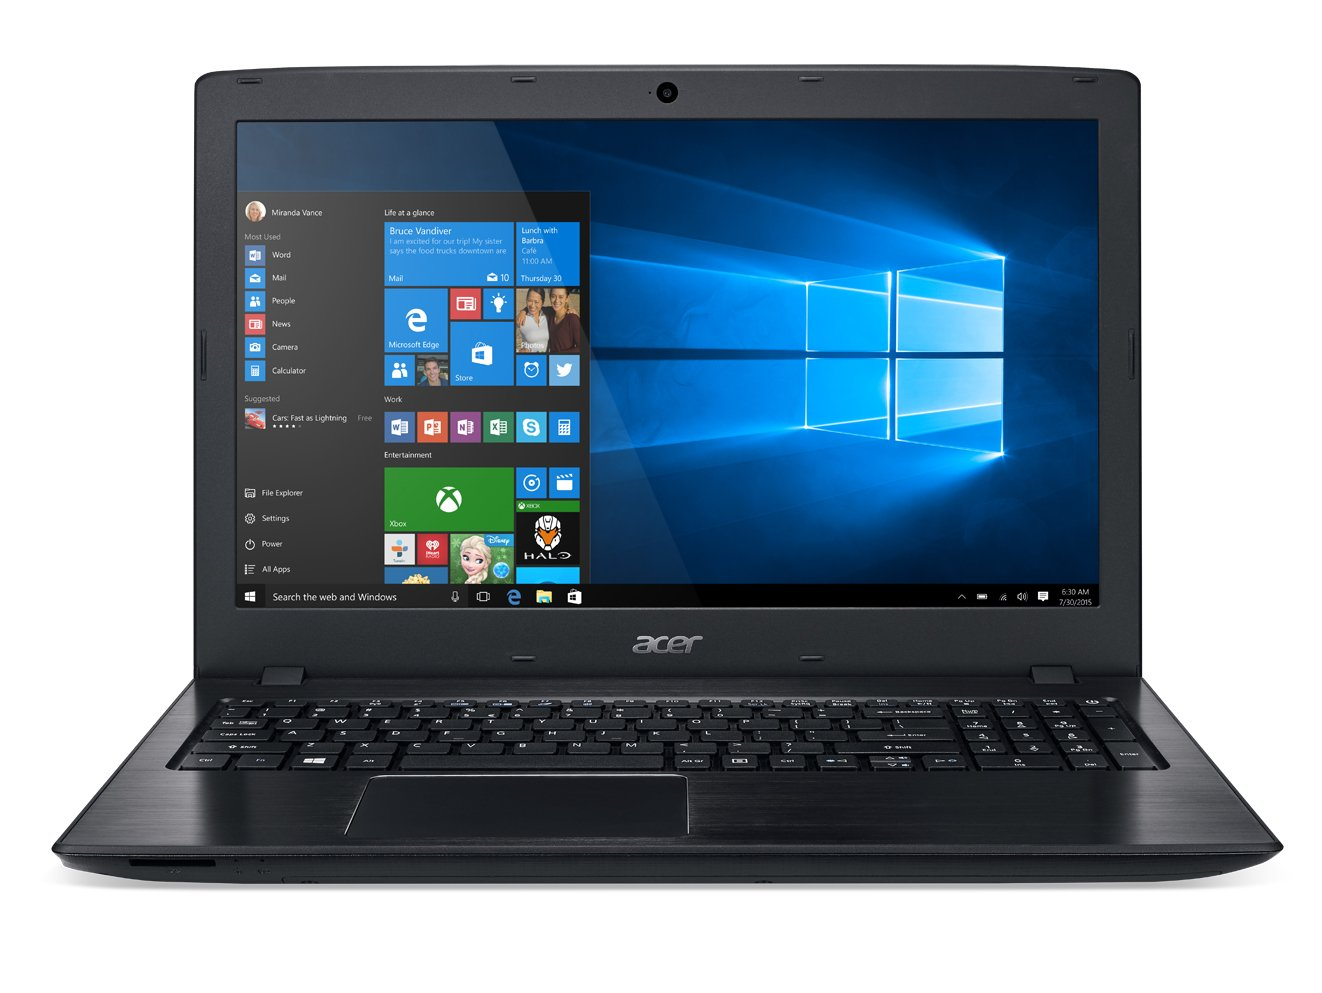 Acer Aspire E 15 E5-575-33BM 15.6-Inch FHD Notebook (Intel Core i3-7100U 7th Generation , 4GB DDR4, 1TB 5400RPM HD, Intel HD Graphics 620, Windows 10 Home), Obsidian Black by Acer